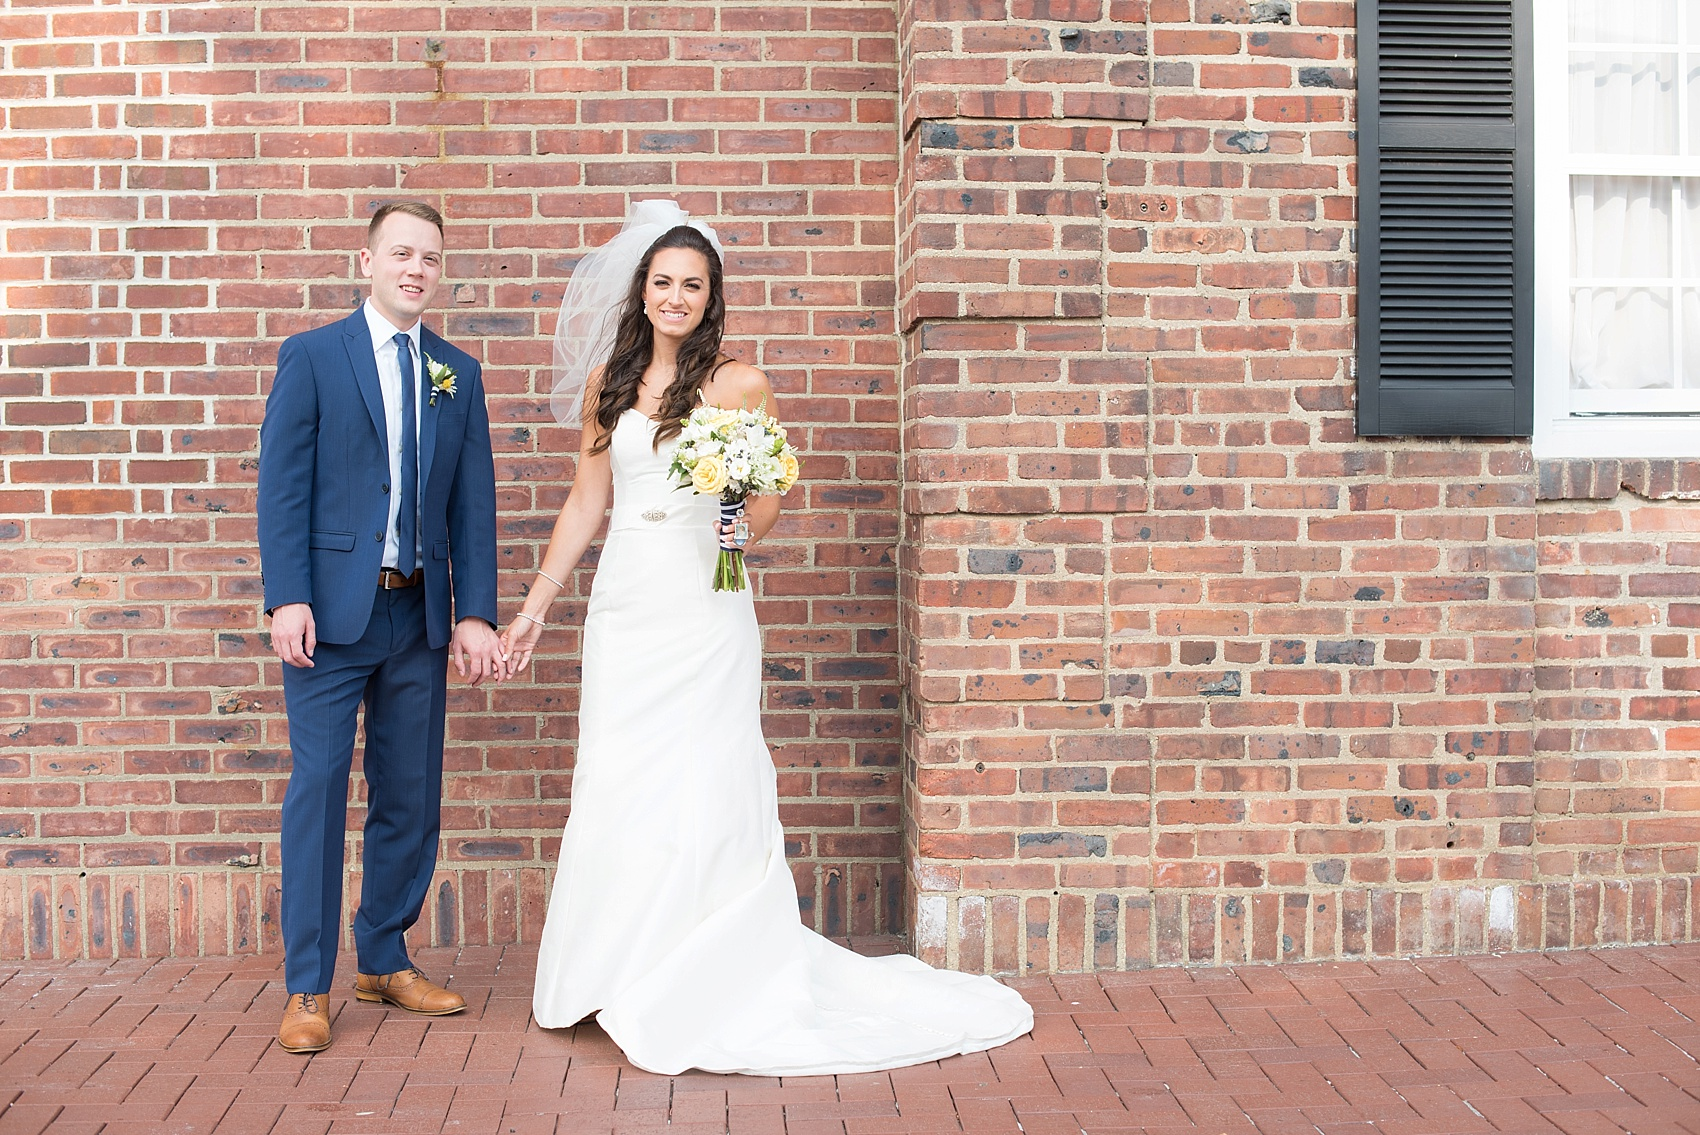 Bride and groom in New Jersey for their nautical wedding at the Molly Pitcher Inn. Photo by Mikkel Paige Photography.